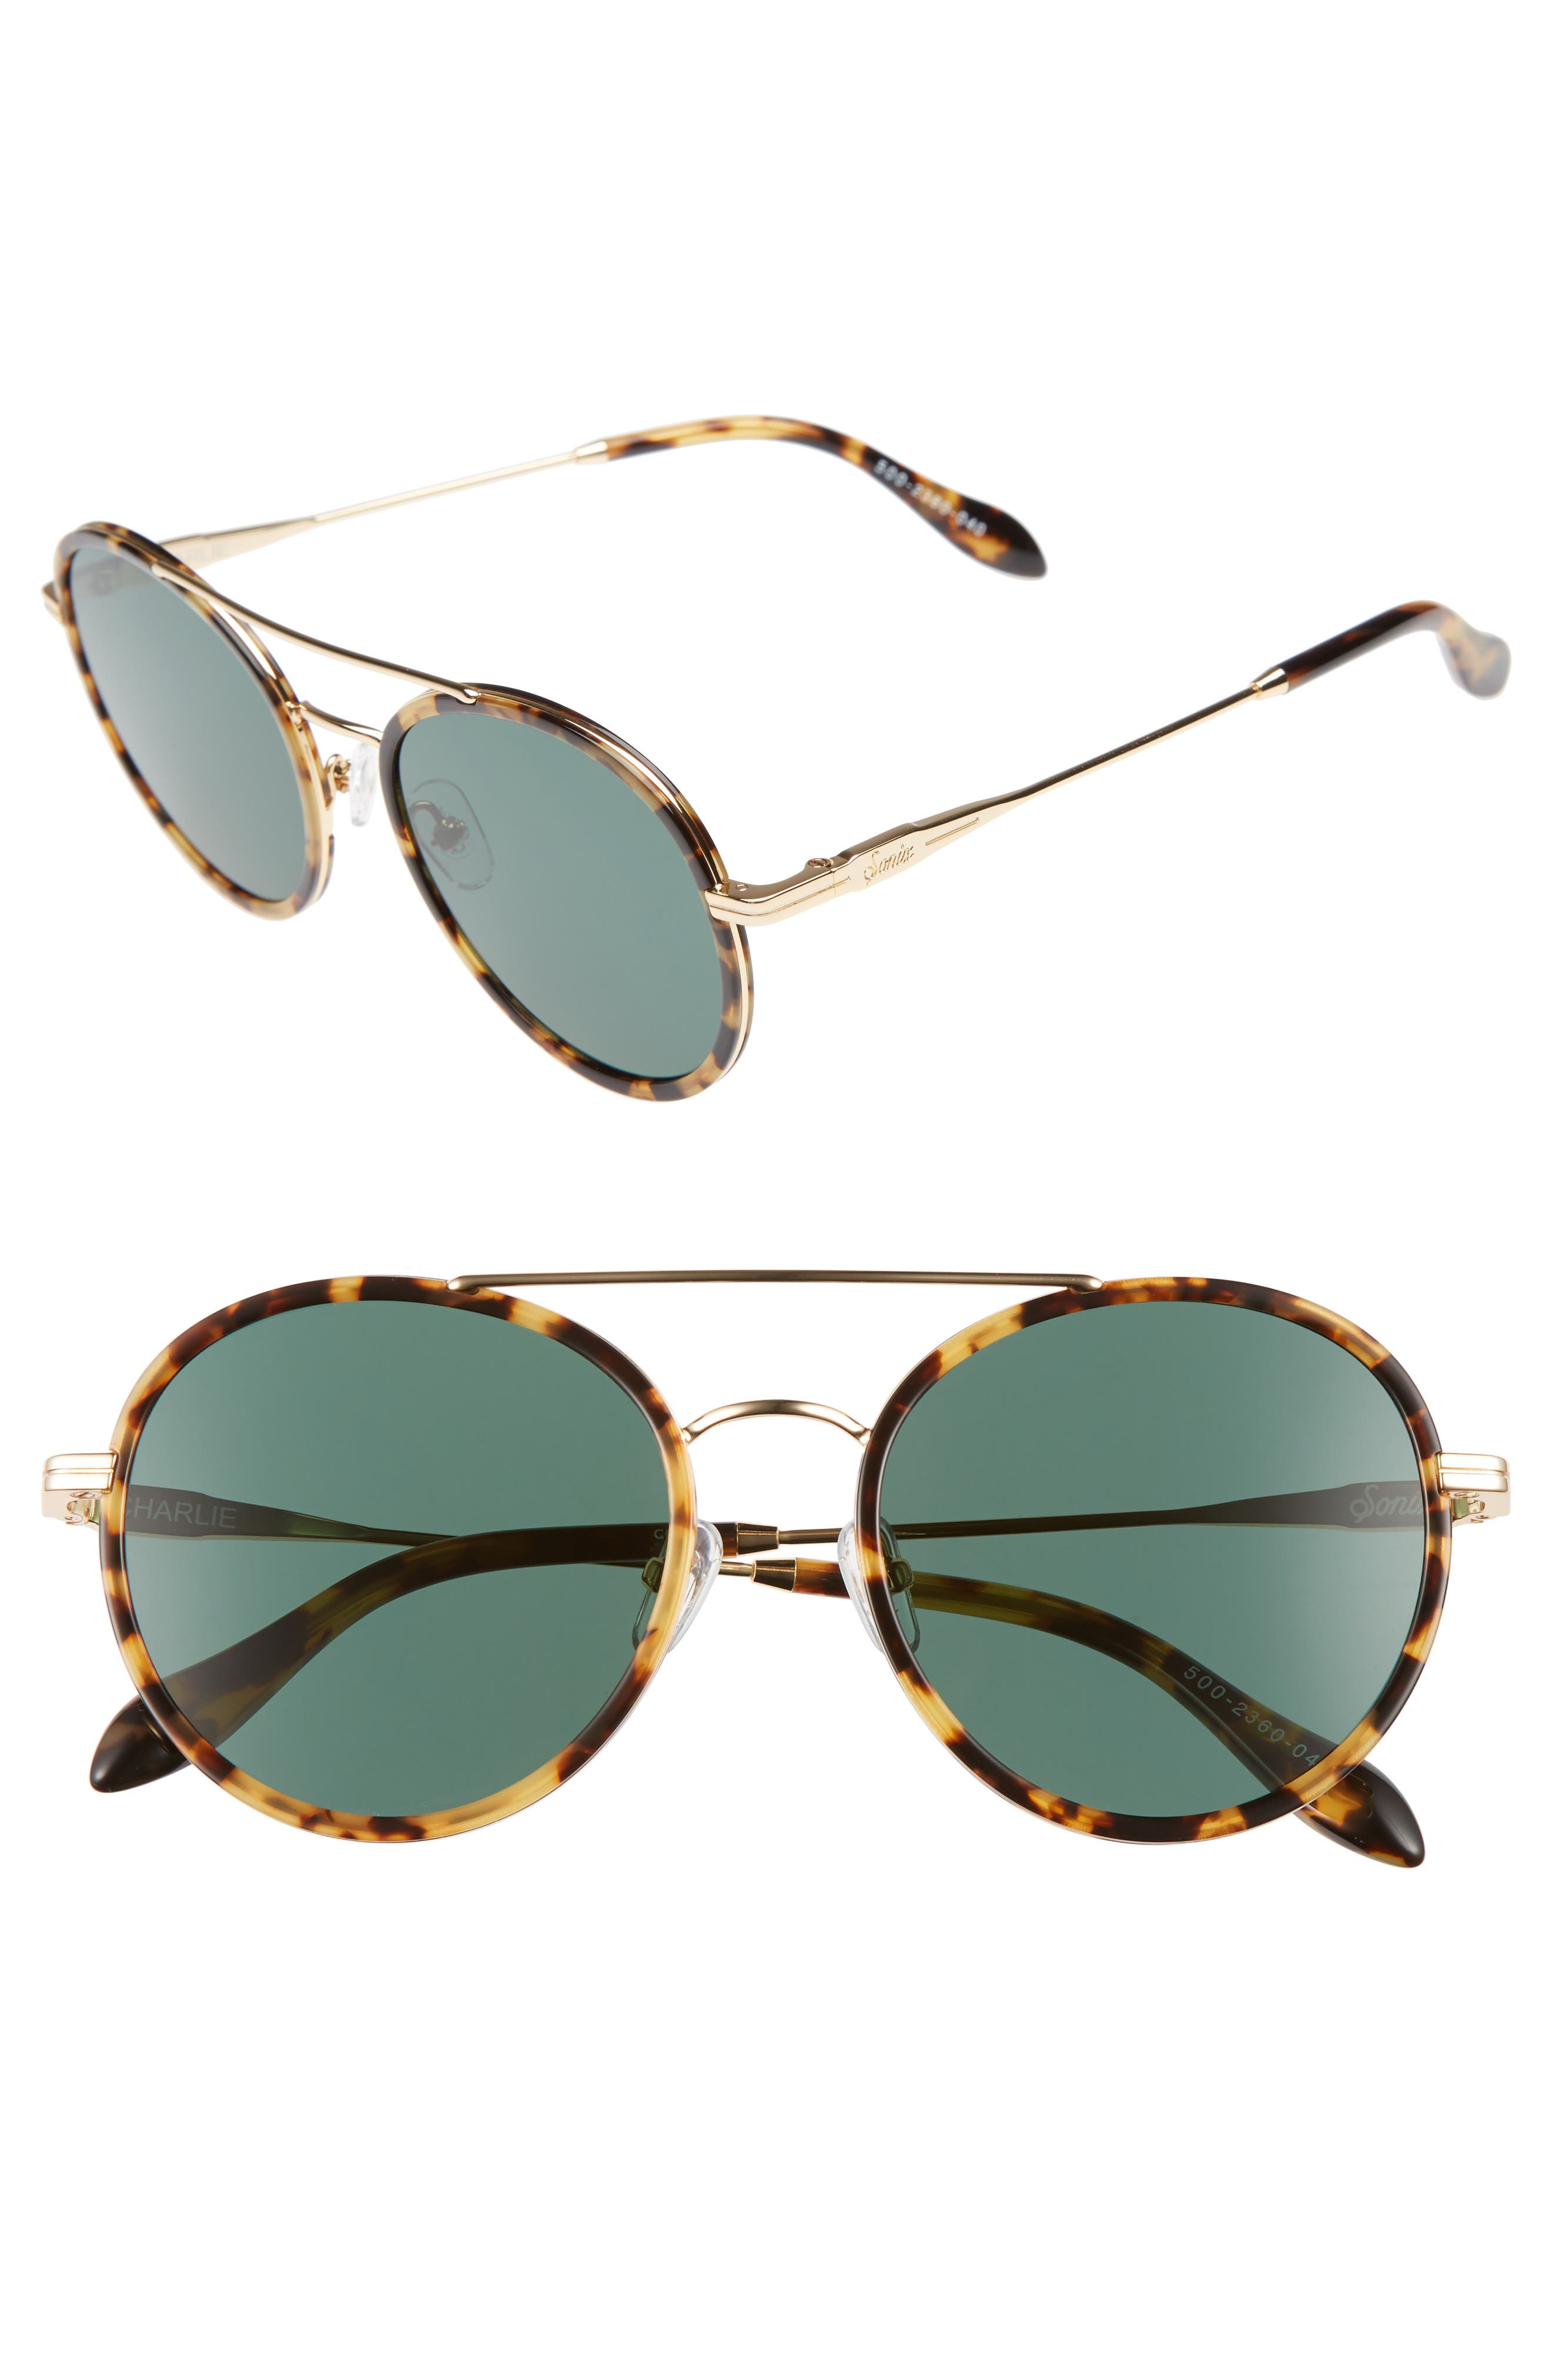 Charli 50mm Mirrored Lens Round Sunglasses,                         Main,                         color, Brown Tortoise/ Olive